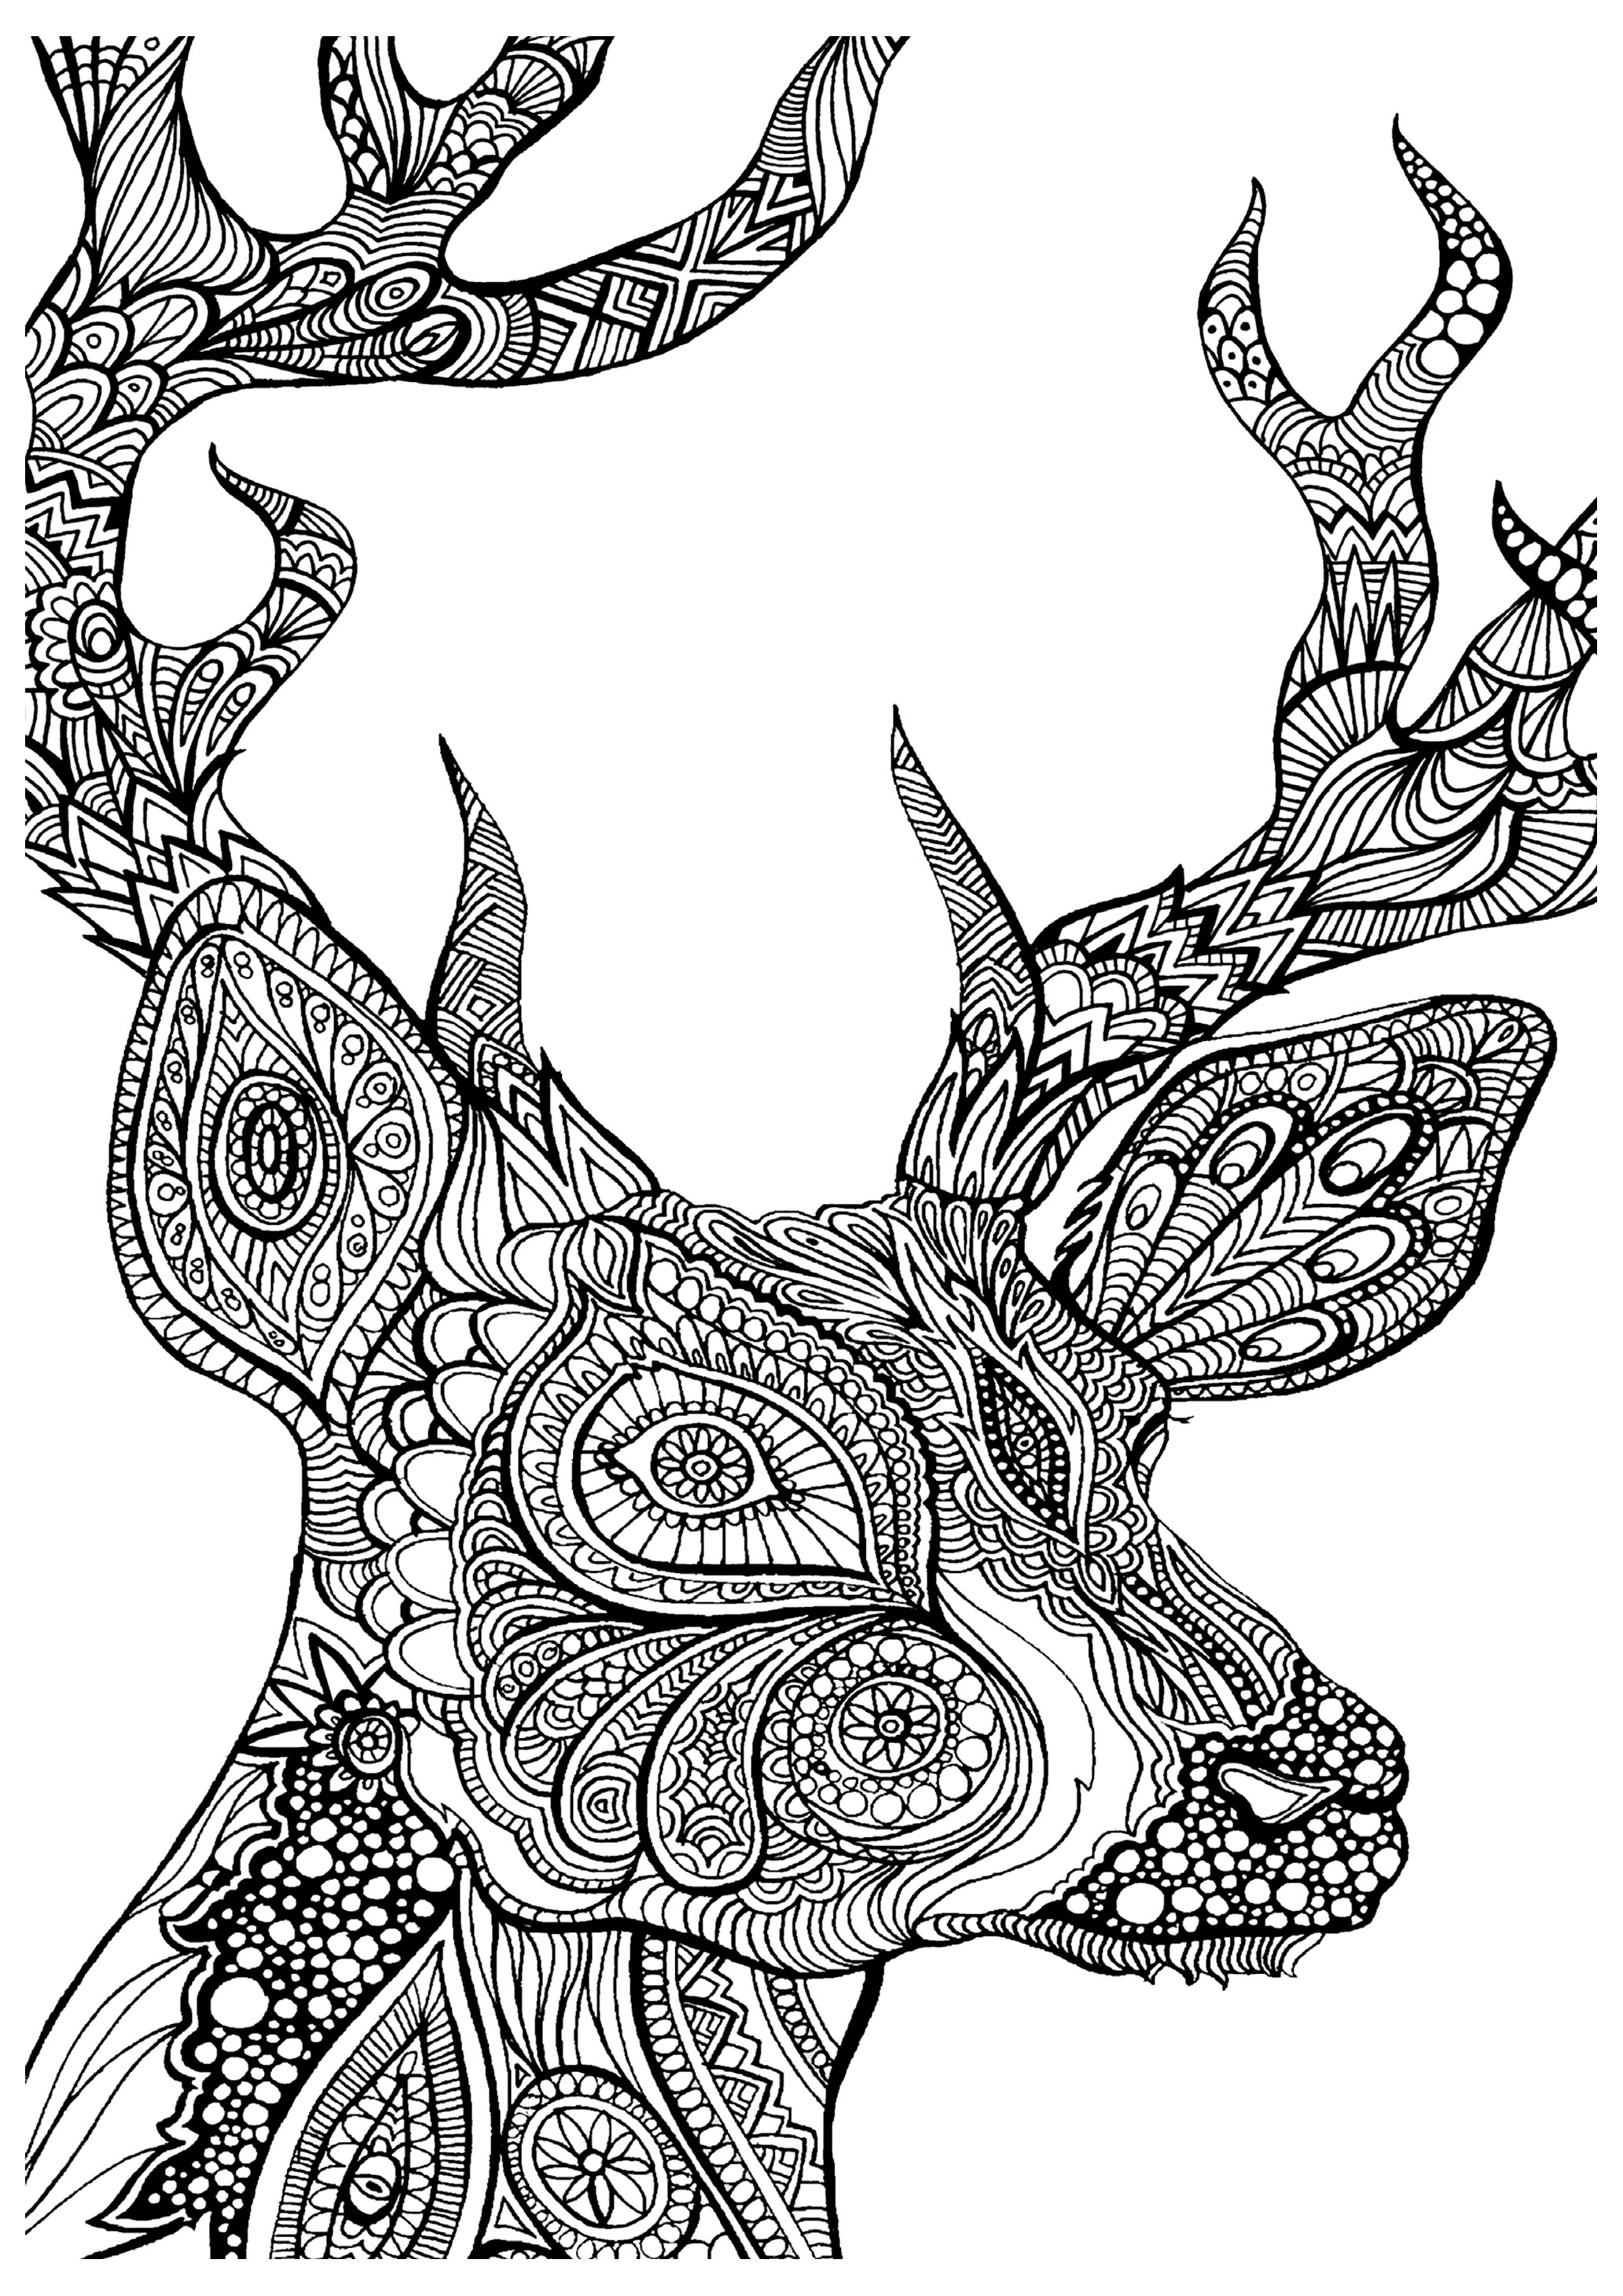 Free Adult Coloring Pages 35 Gorgeous Printable Coloring Pages To De Stress